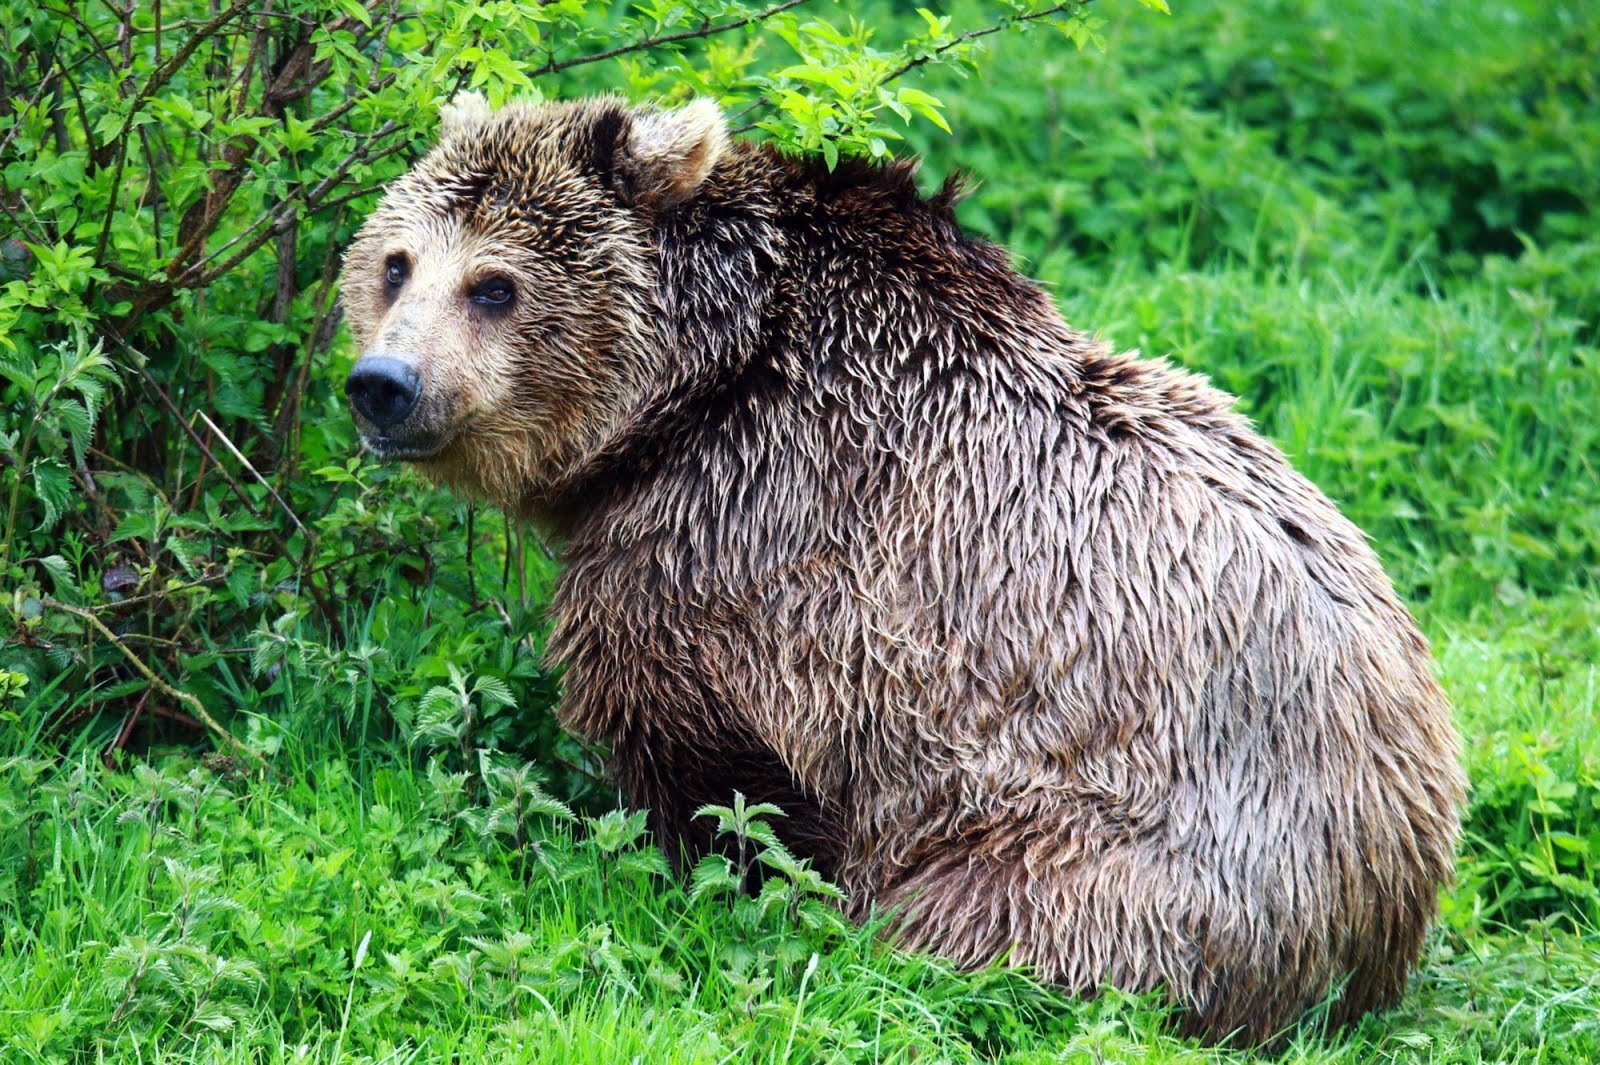 Oso salvaje de color café en las praderas - Brown wild bear | Art pics